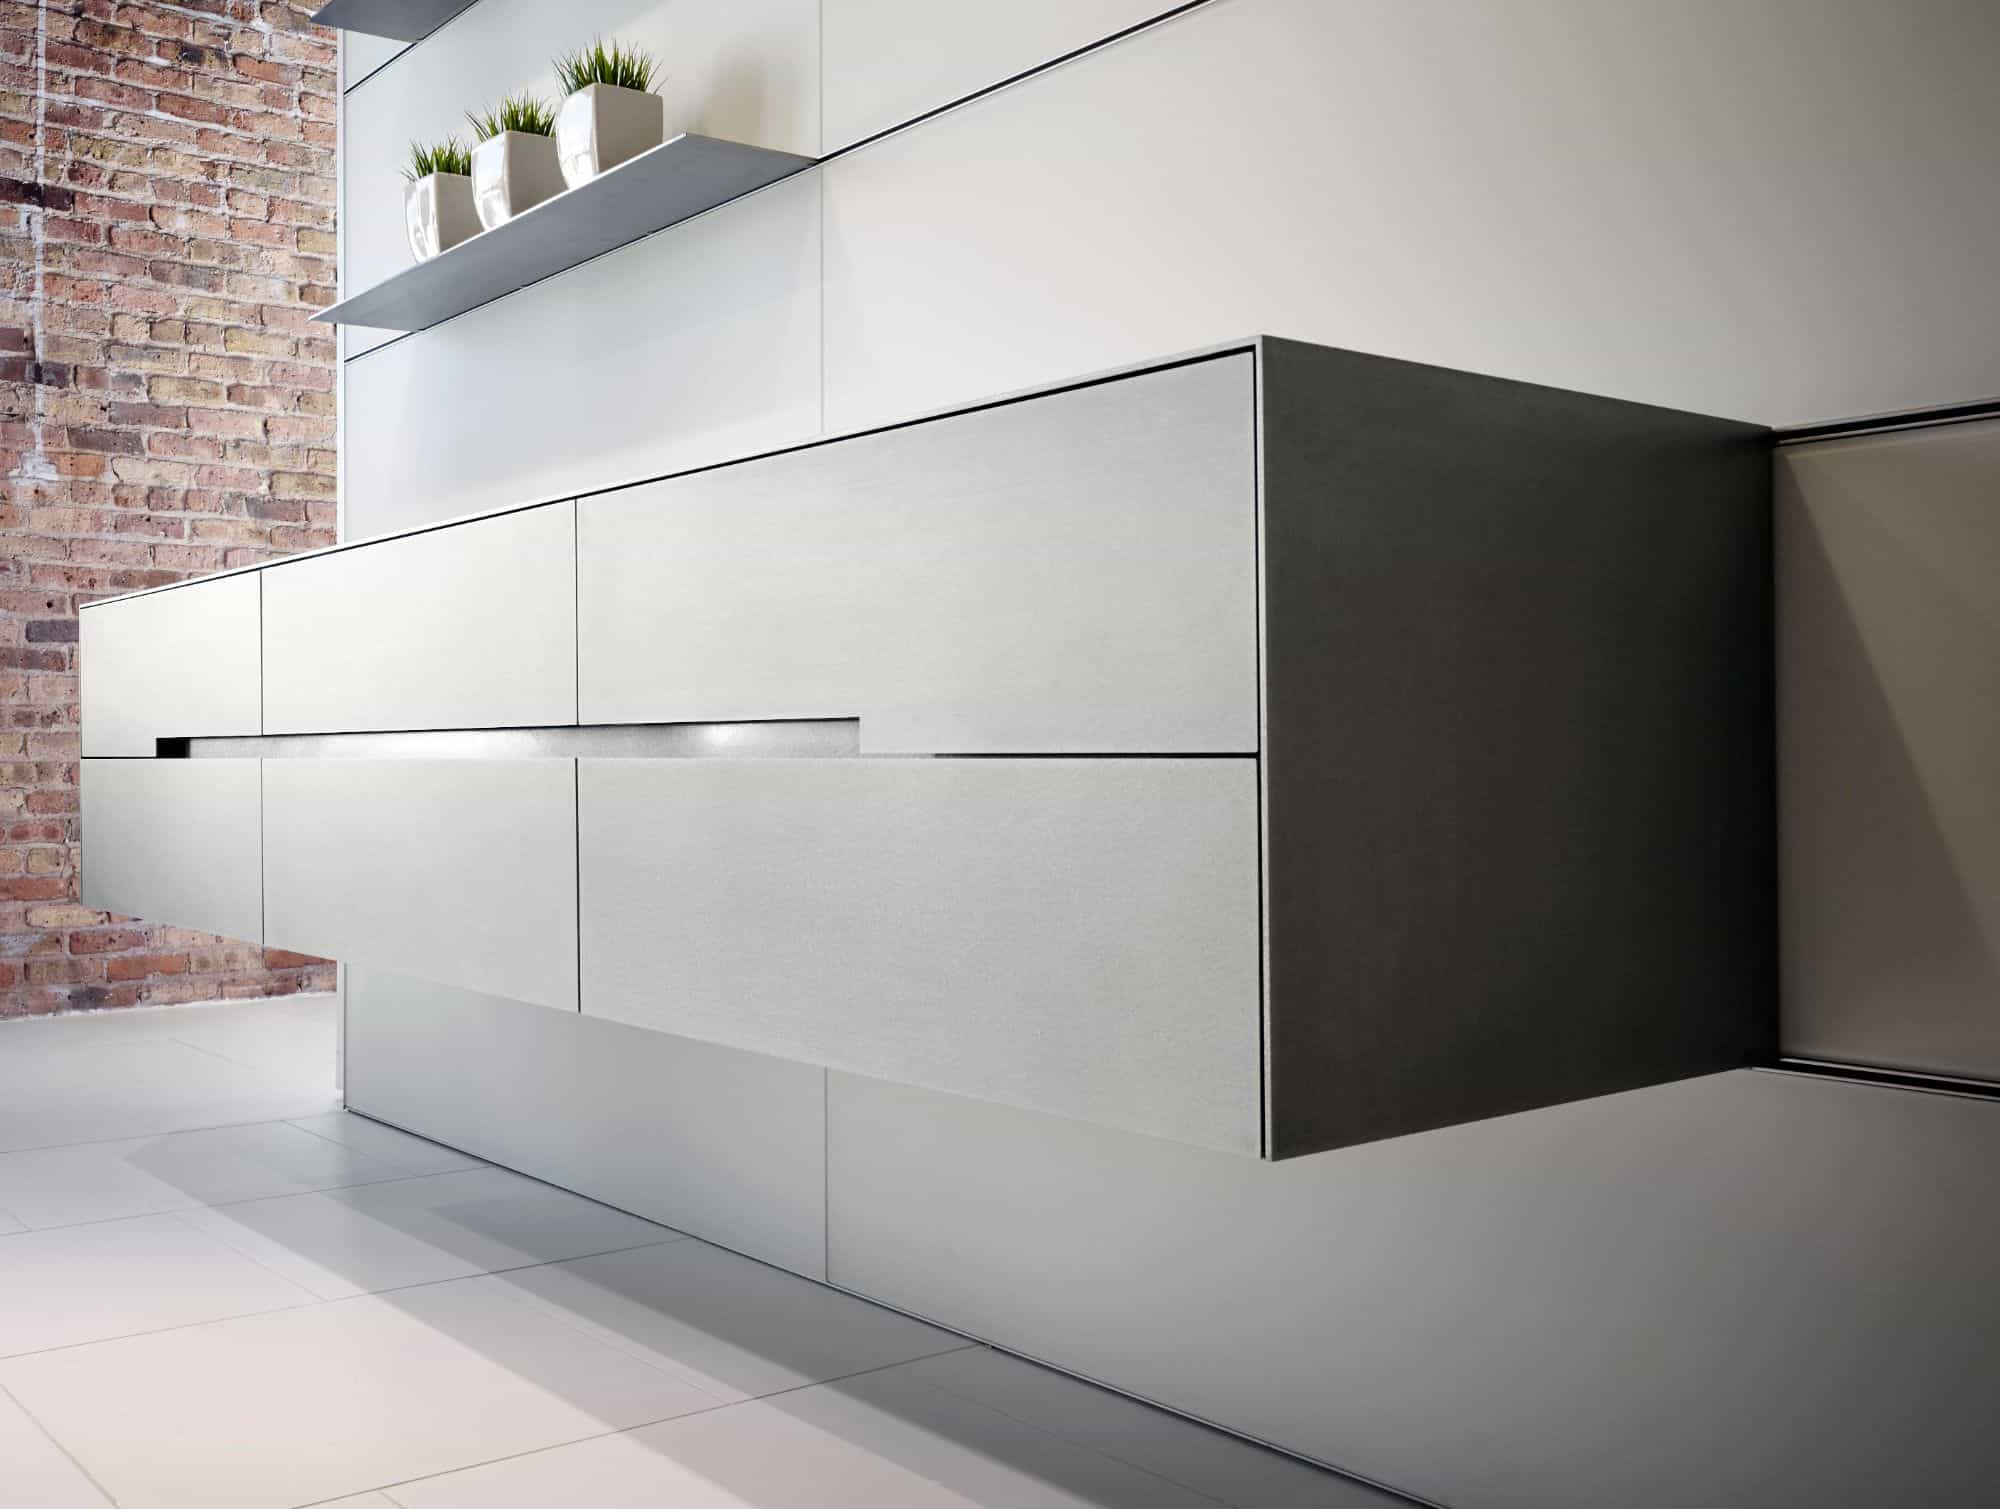 Hot Rolled Stainless Steel sideboard